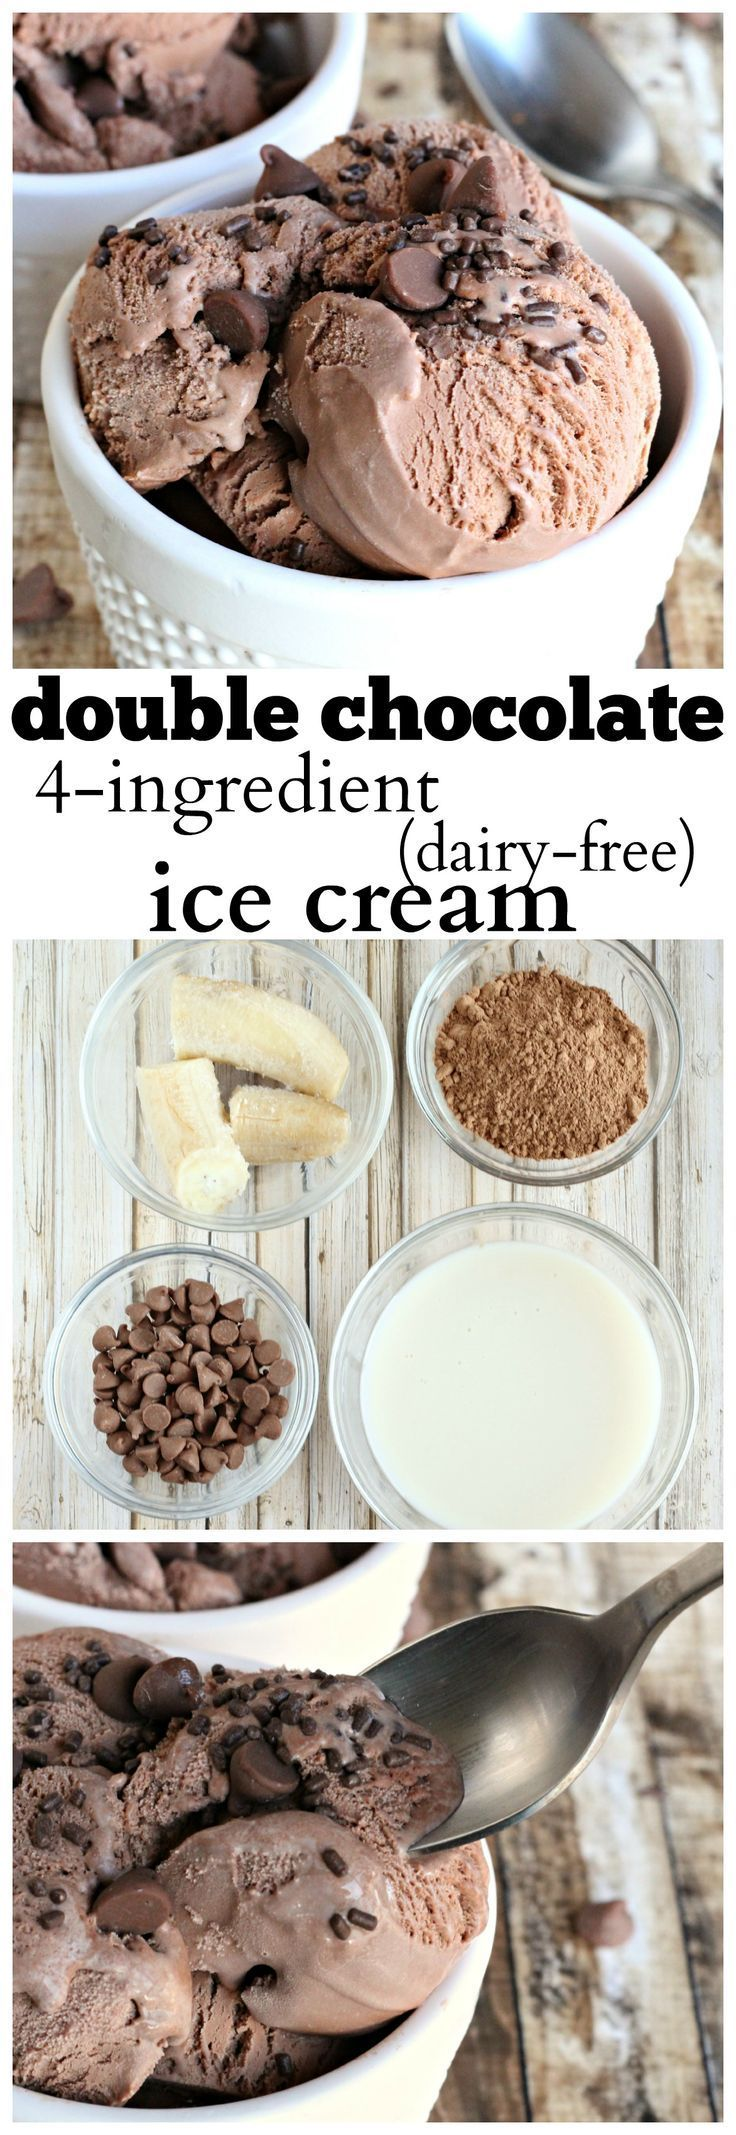 Double chocolate ice cream made dairy free with only 4 ingredients double chocolate ice cream made dairy free with only 4 ingredients scheduled via ccuart Images